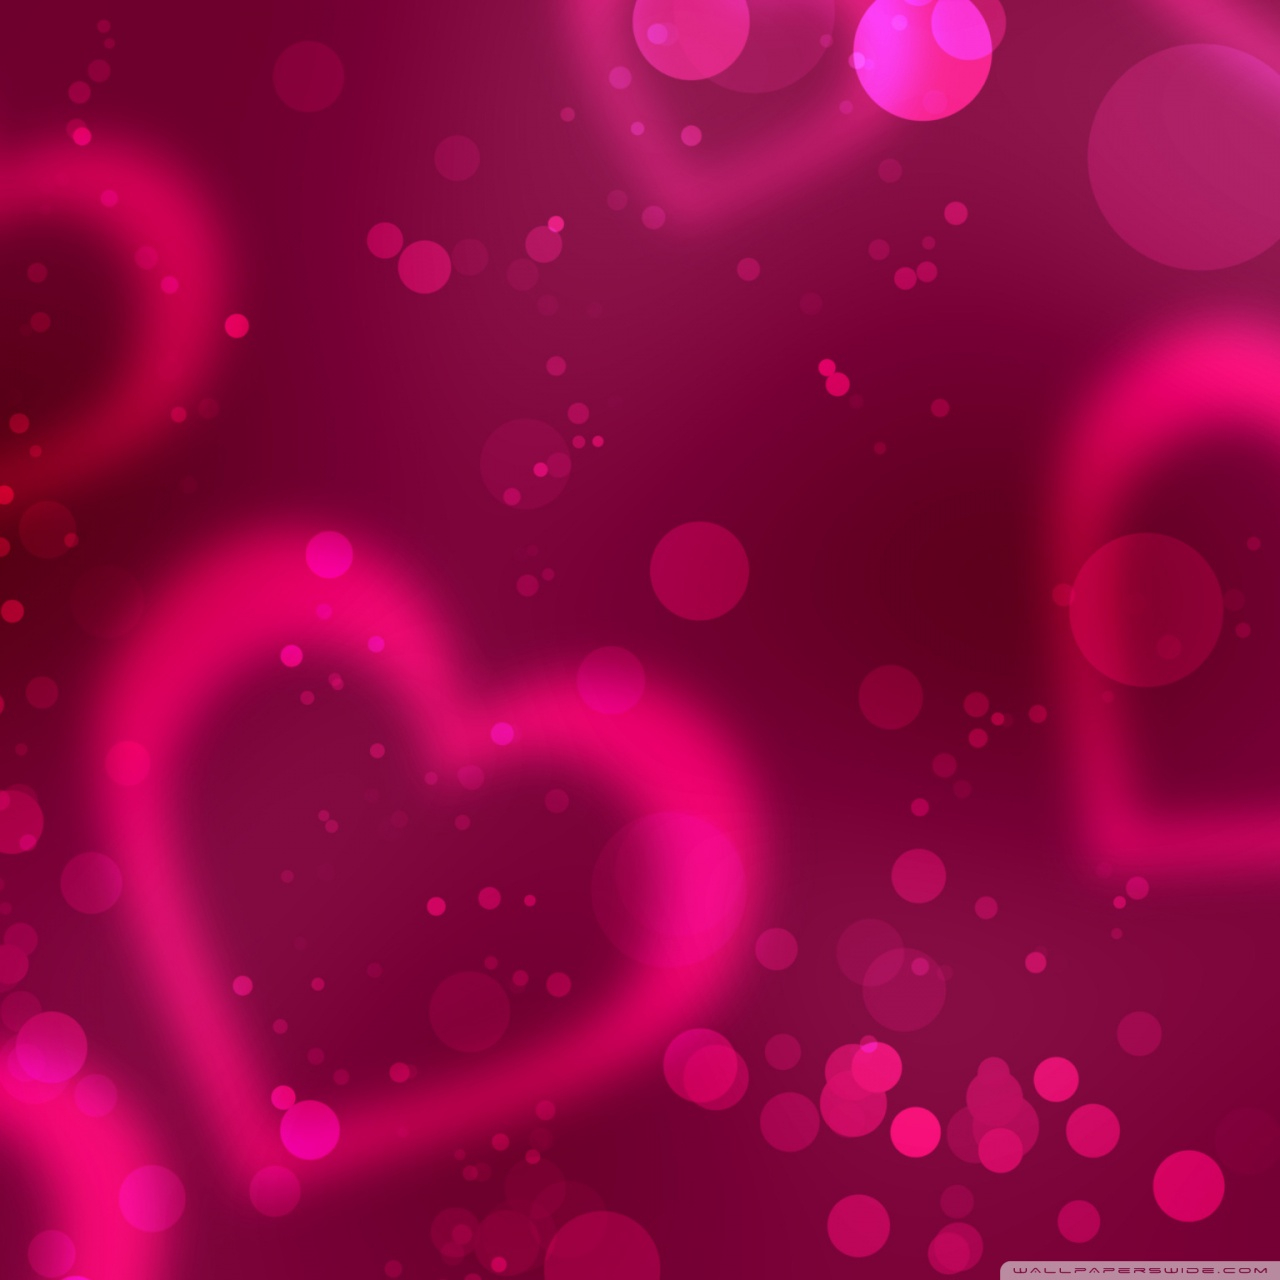 bRxih valentines day ipad backgrounds